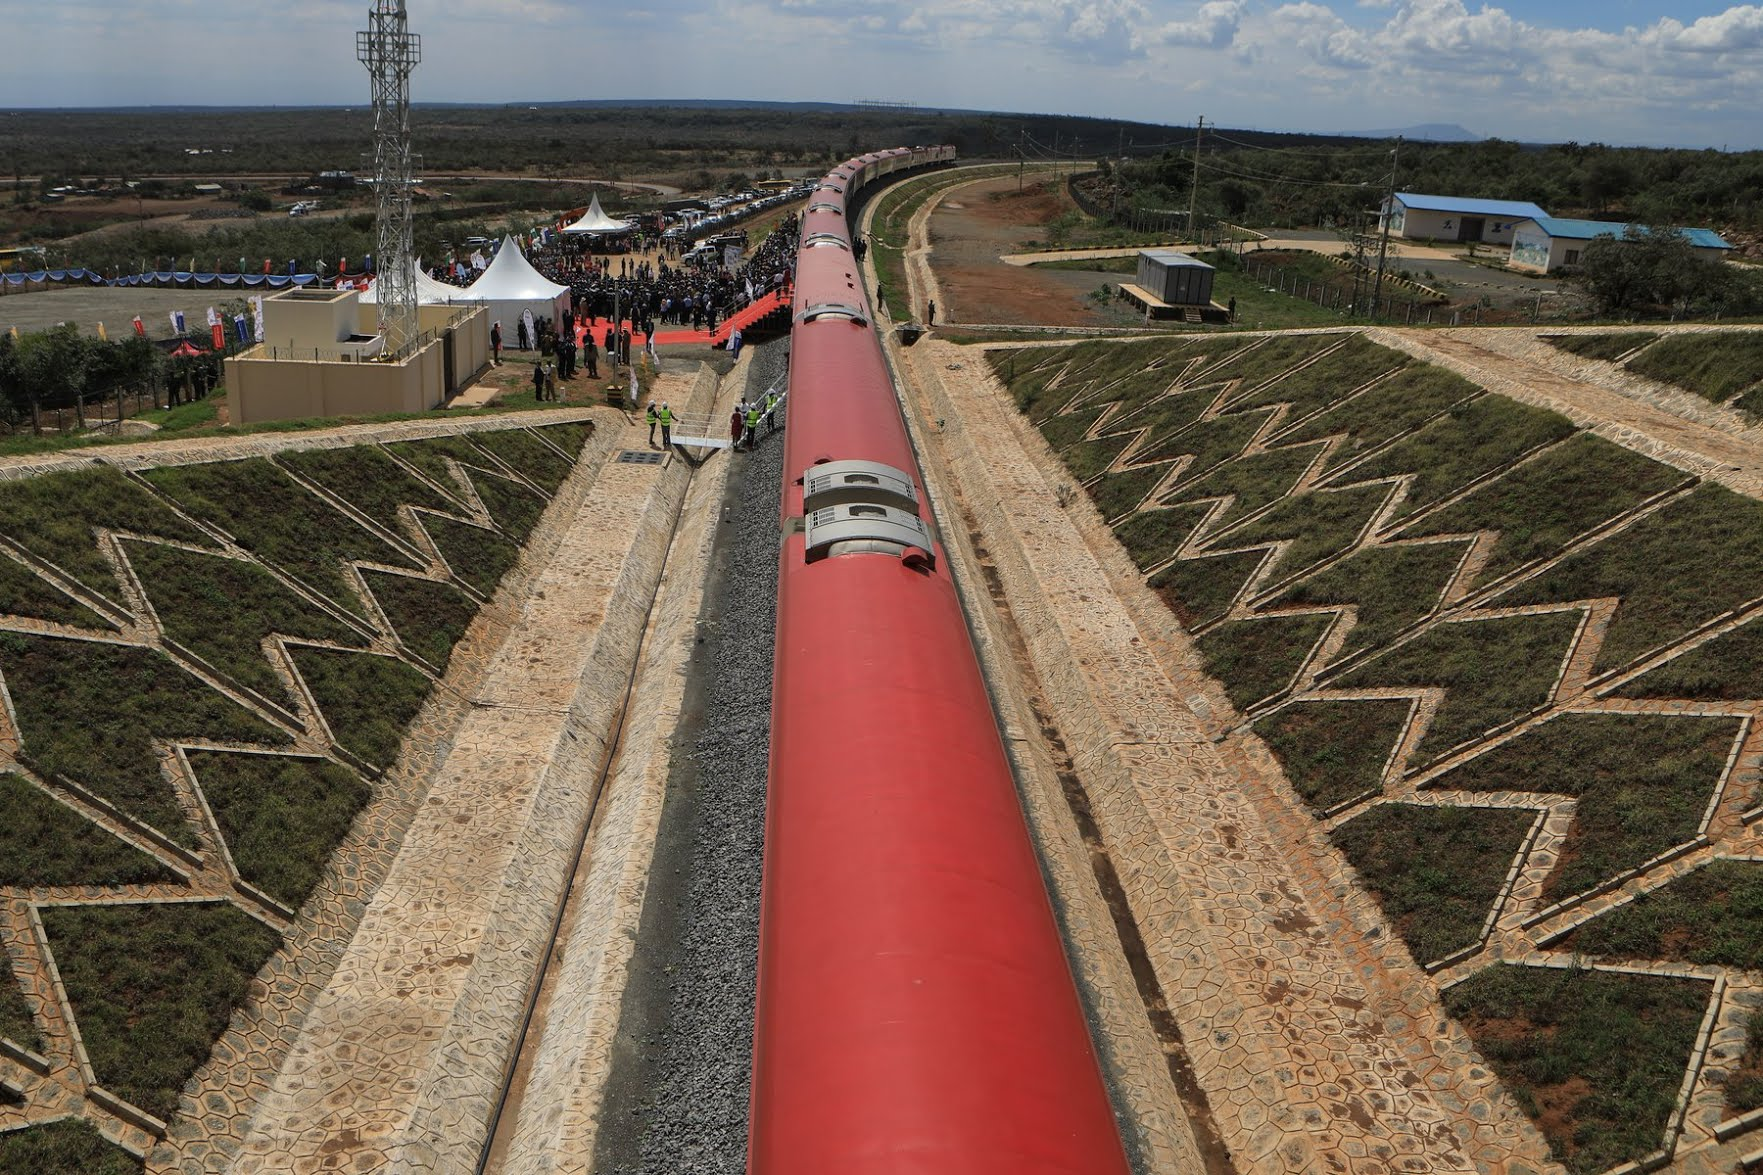 The Nairobi Naivasha SGR passenger train project was built by China Communication Construction Company and funded by Beijing.